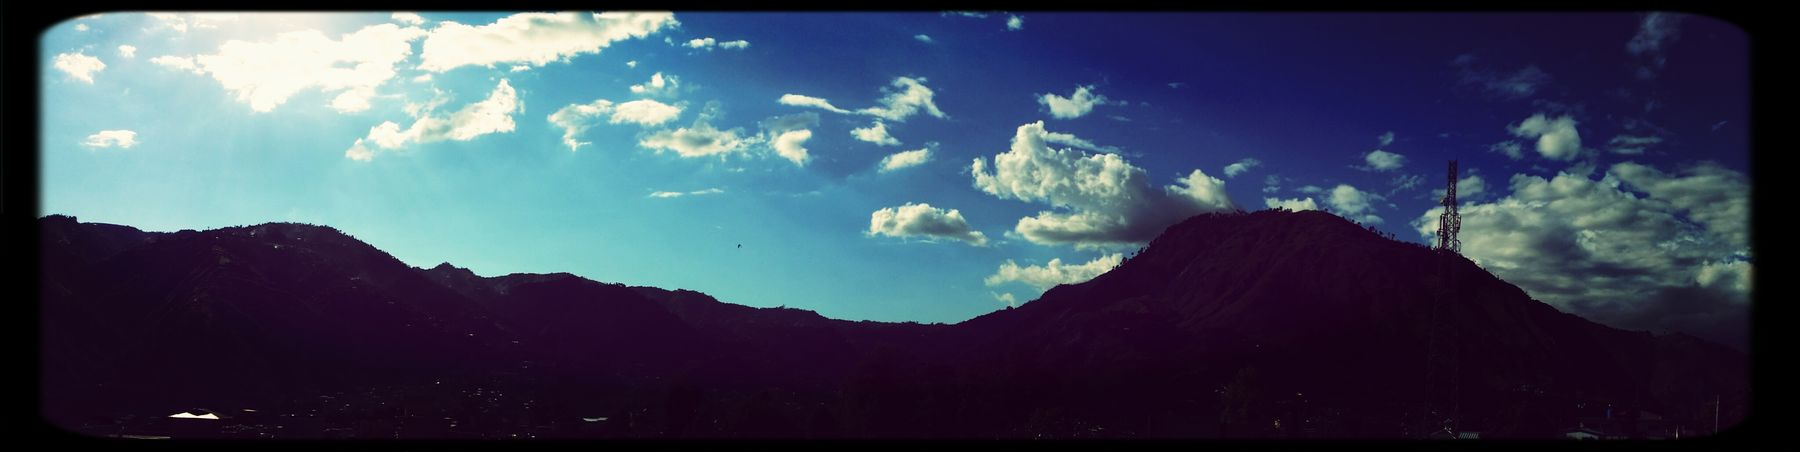 Discover Your City Mountains Sunny Clouds And Sky